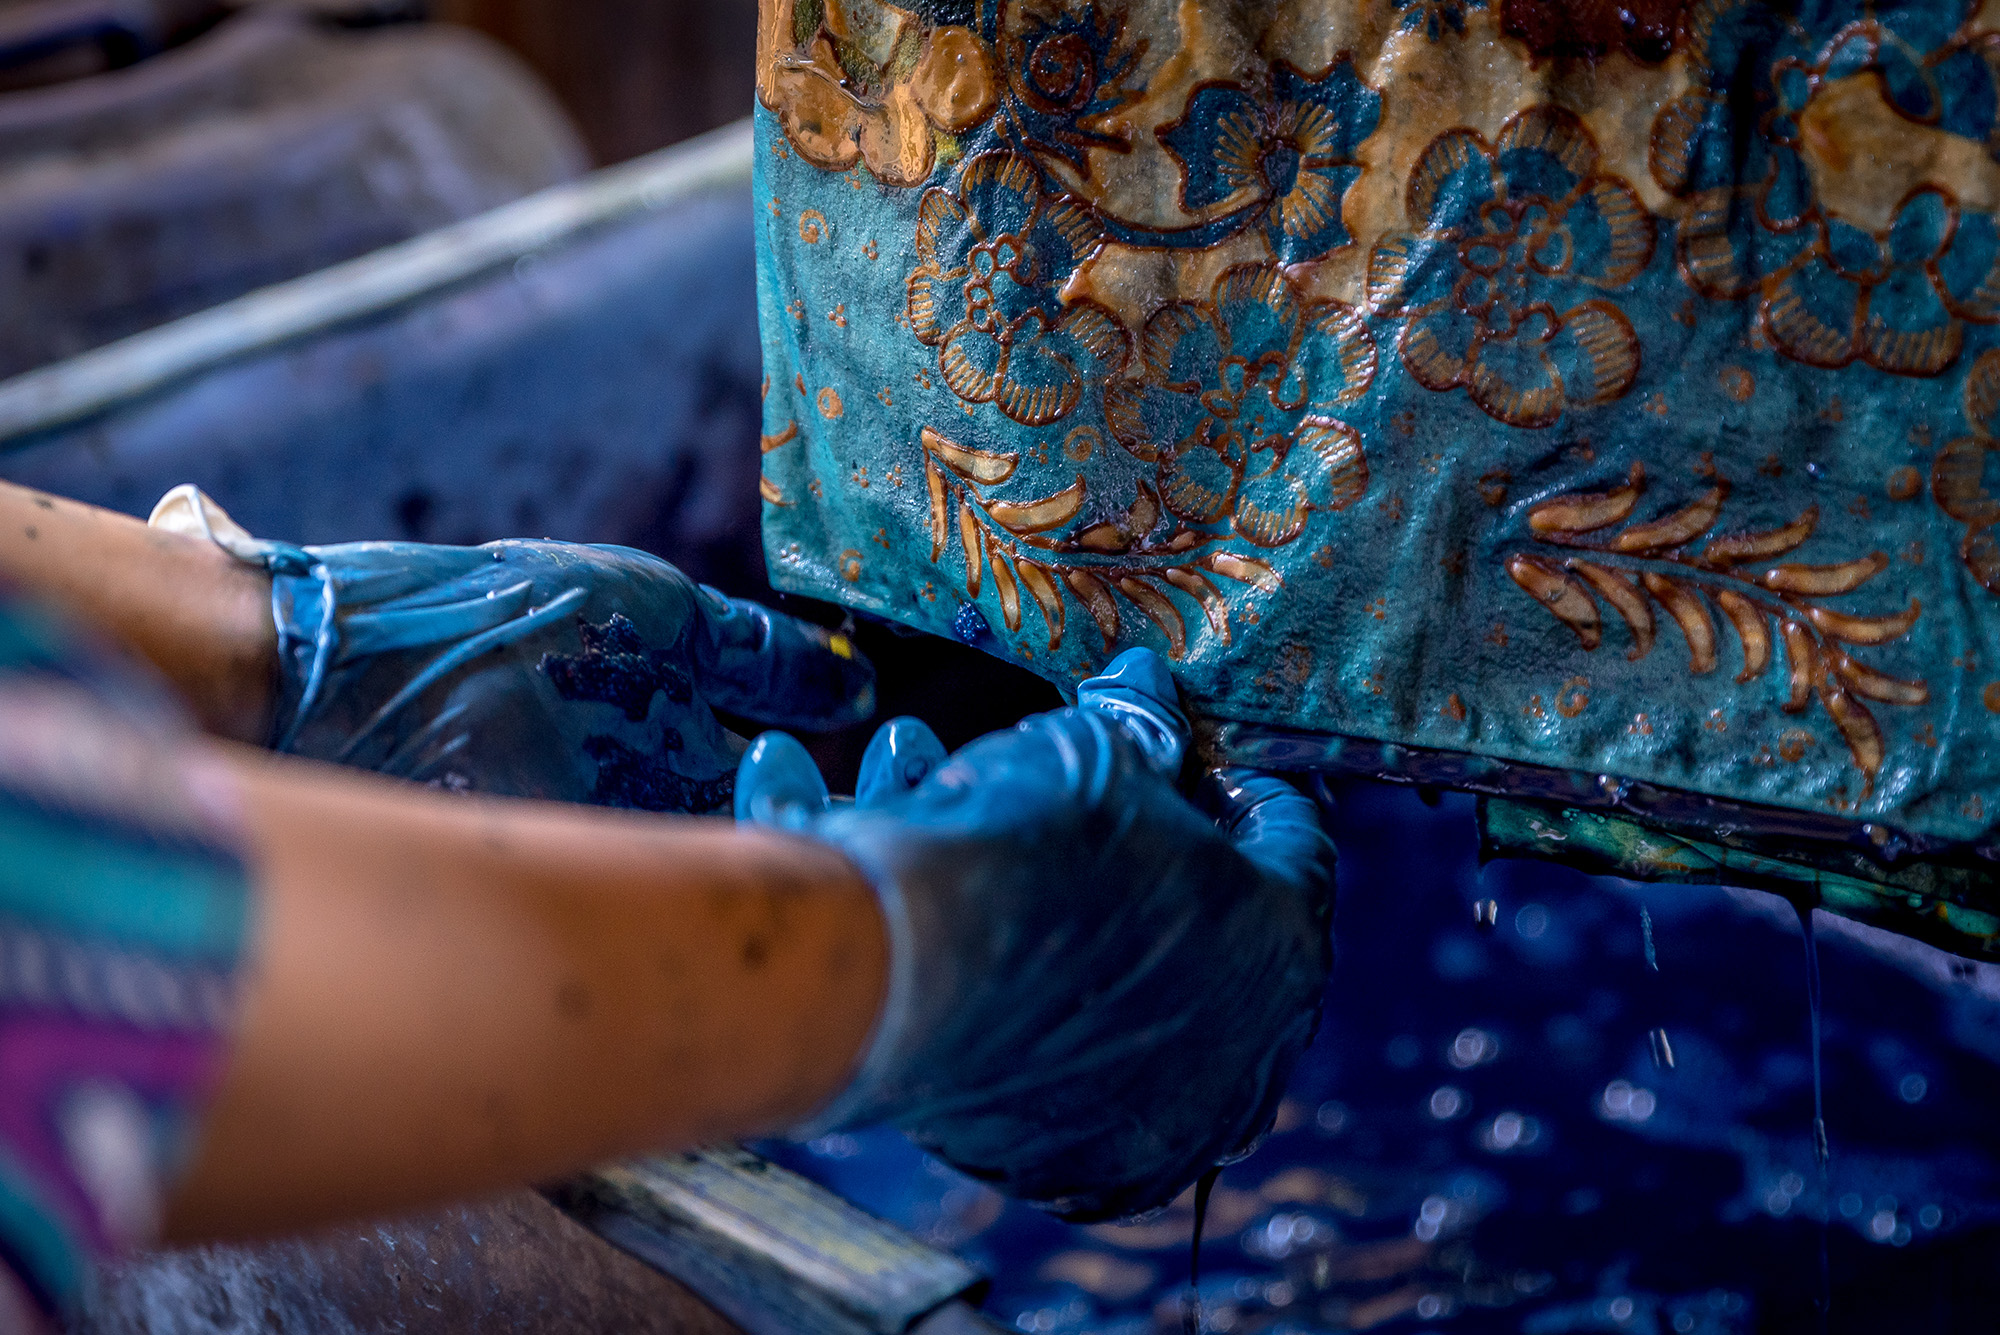 Hands in blue gloves holding fabric, both dripping in dye